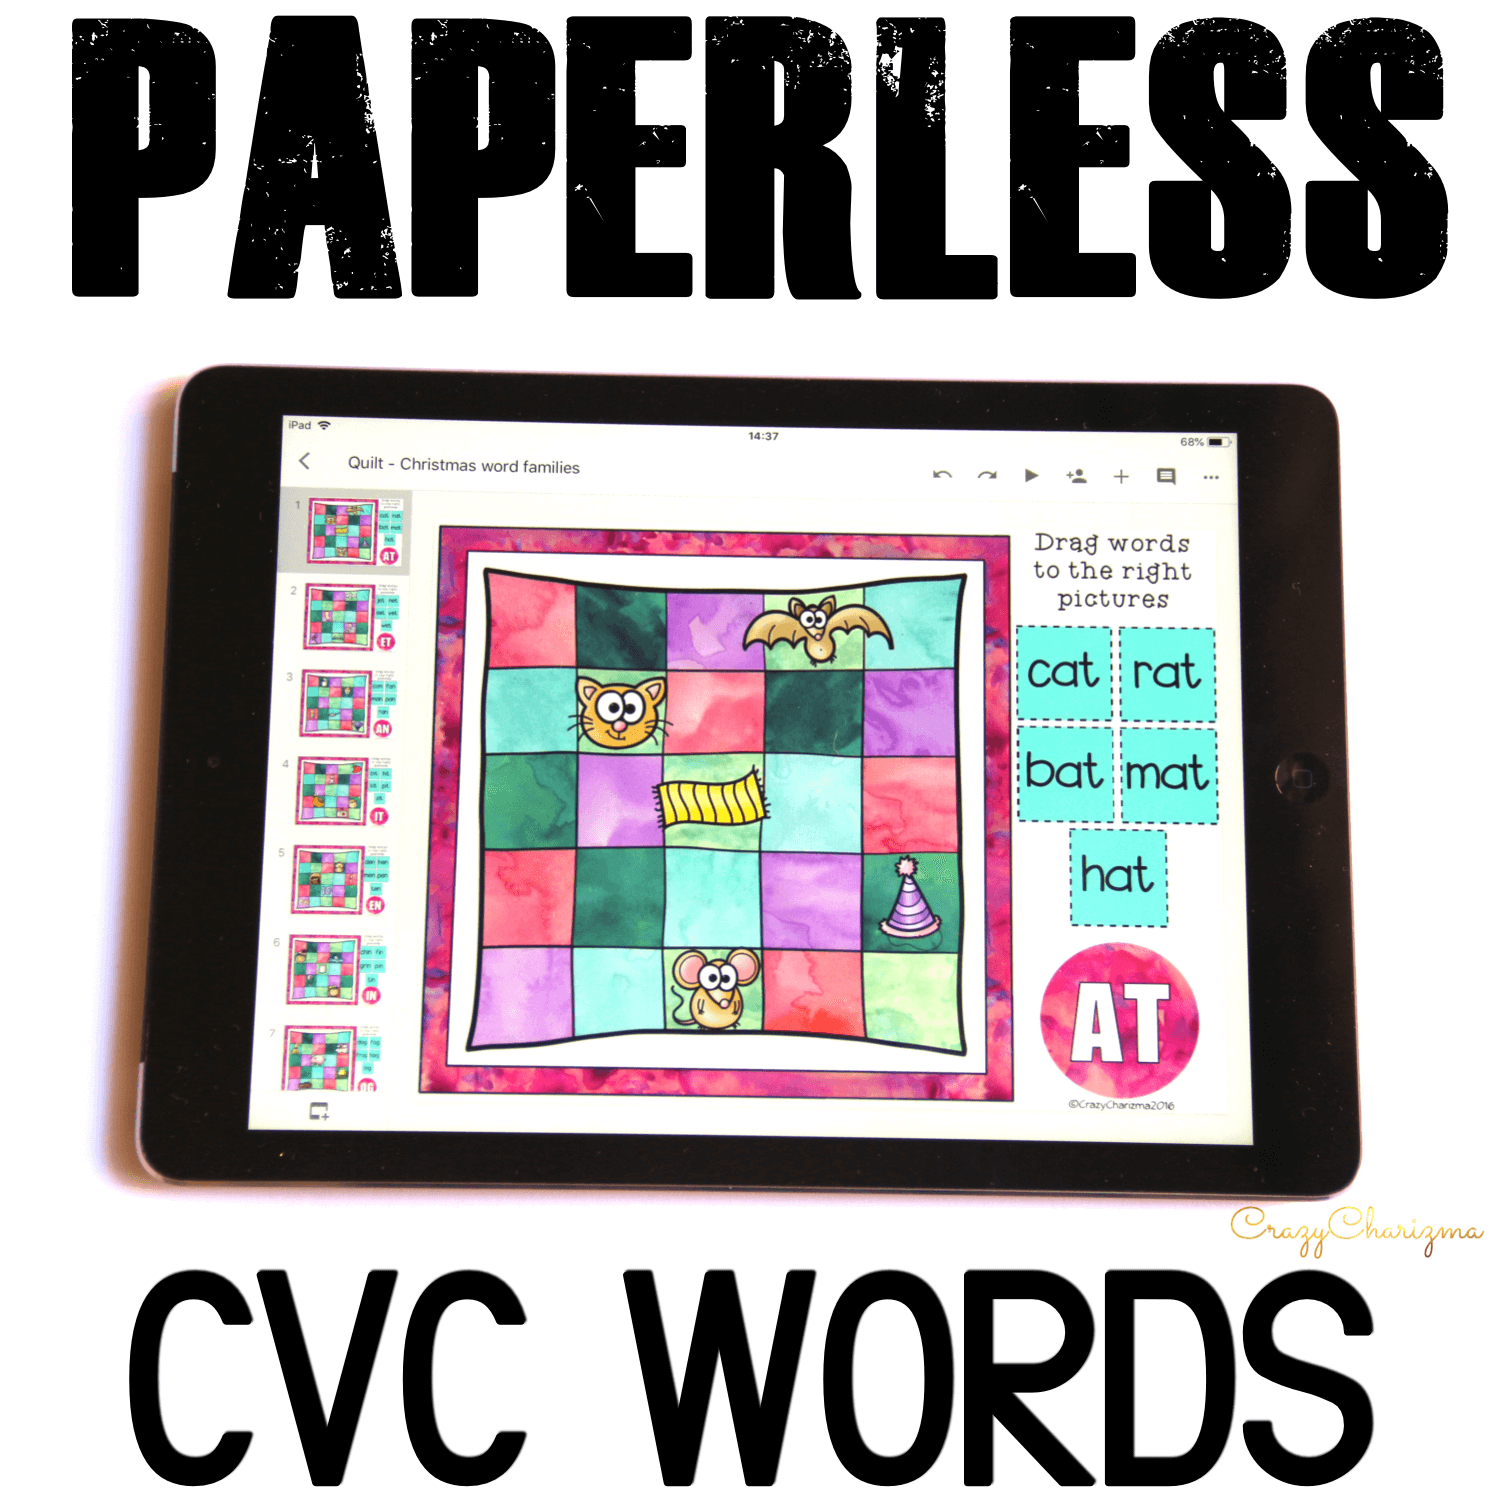 Google Classroom Activities for Kindergarten. CVC Words Games. Want to practice CVC words on Chromebooks or iPads? Google Classroom activities are what you've been looking for! Engage kids with word work. Encourage to practice vocabulary in a fun way! #CrazyCharizma #GoogleClassroom #GoogleClassroomKindergarten #HandsOnActivitiesForKids #PaperlessClassroomElementary #PhonicsGames